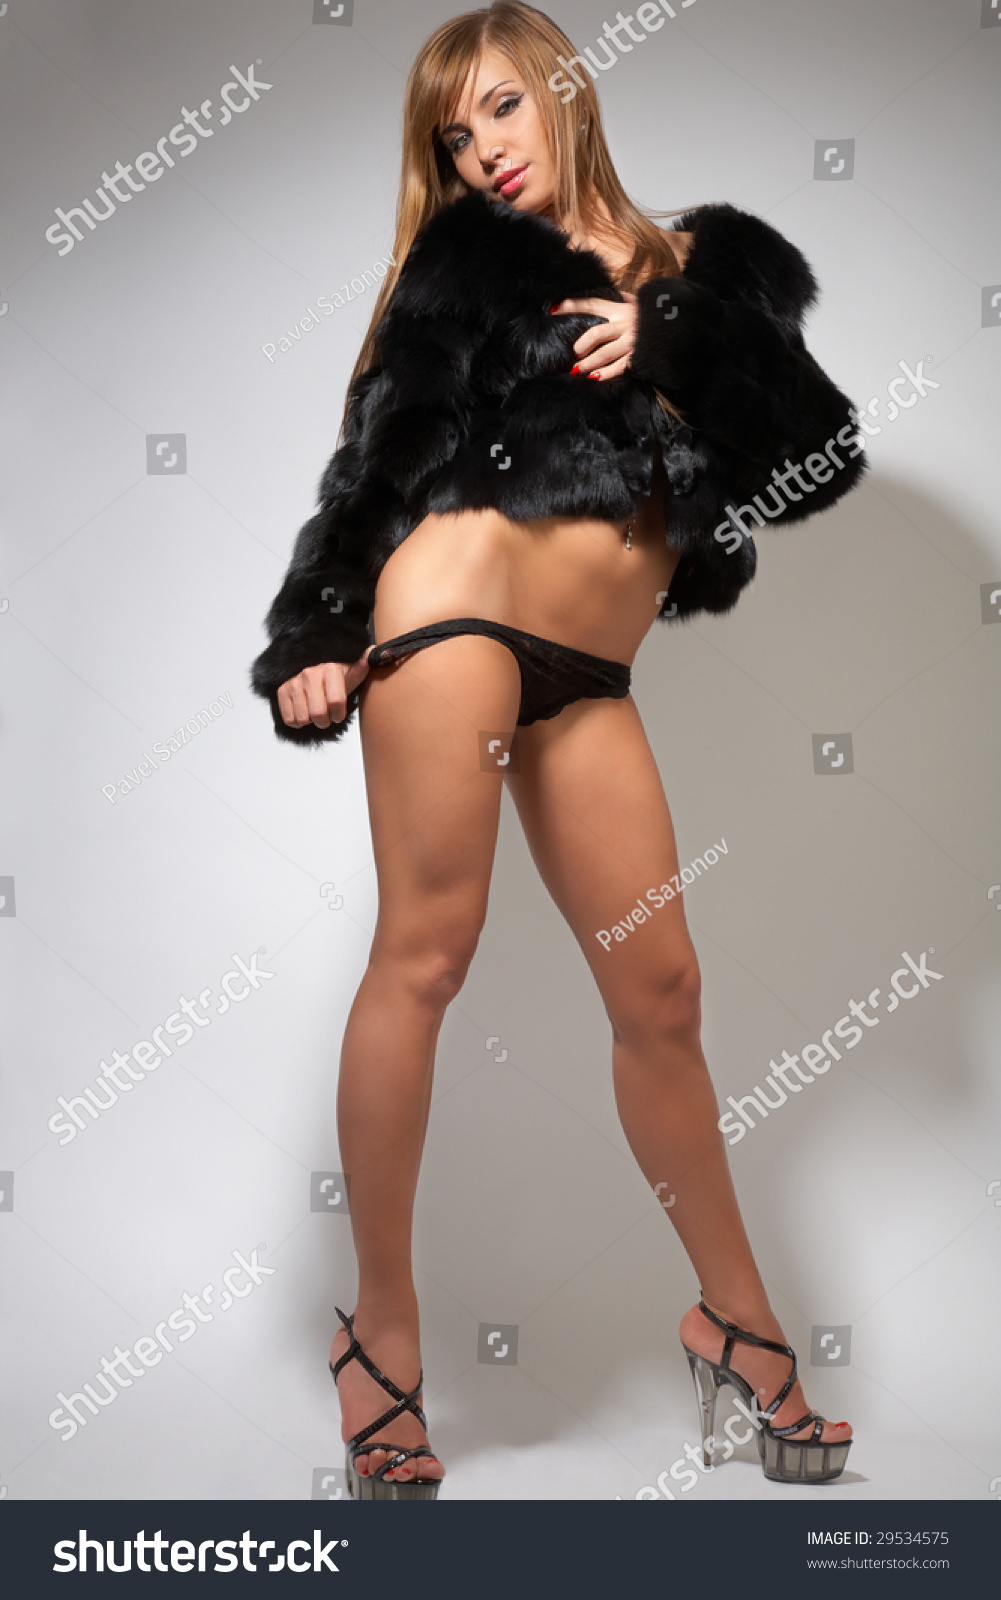 Think, naked girl fur coat are